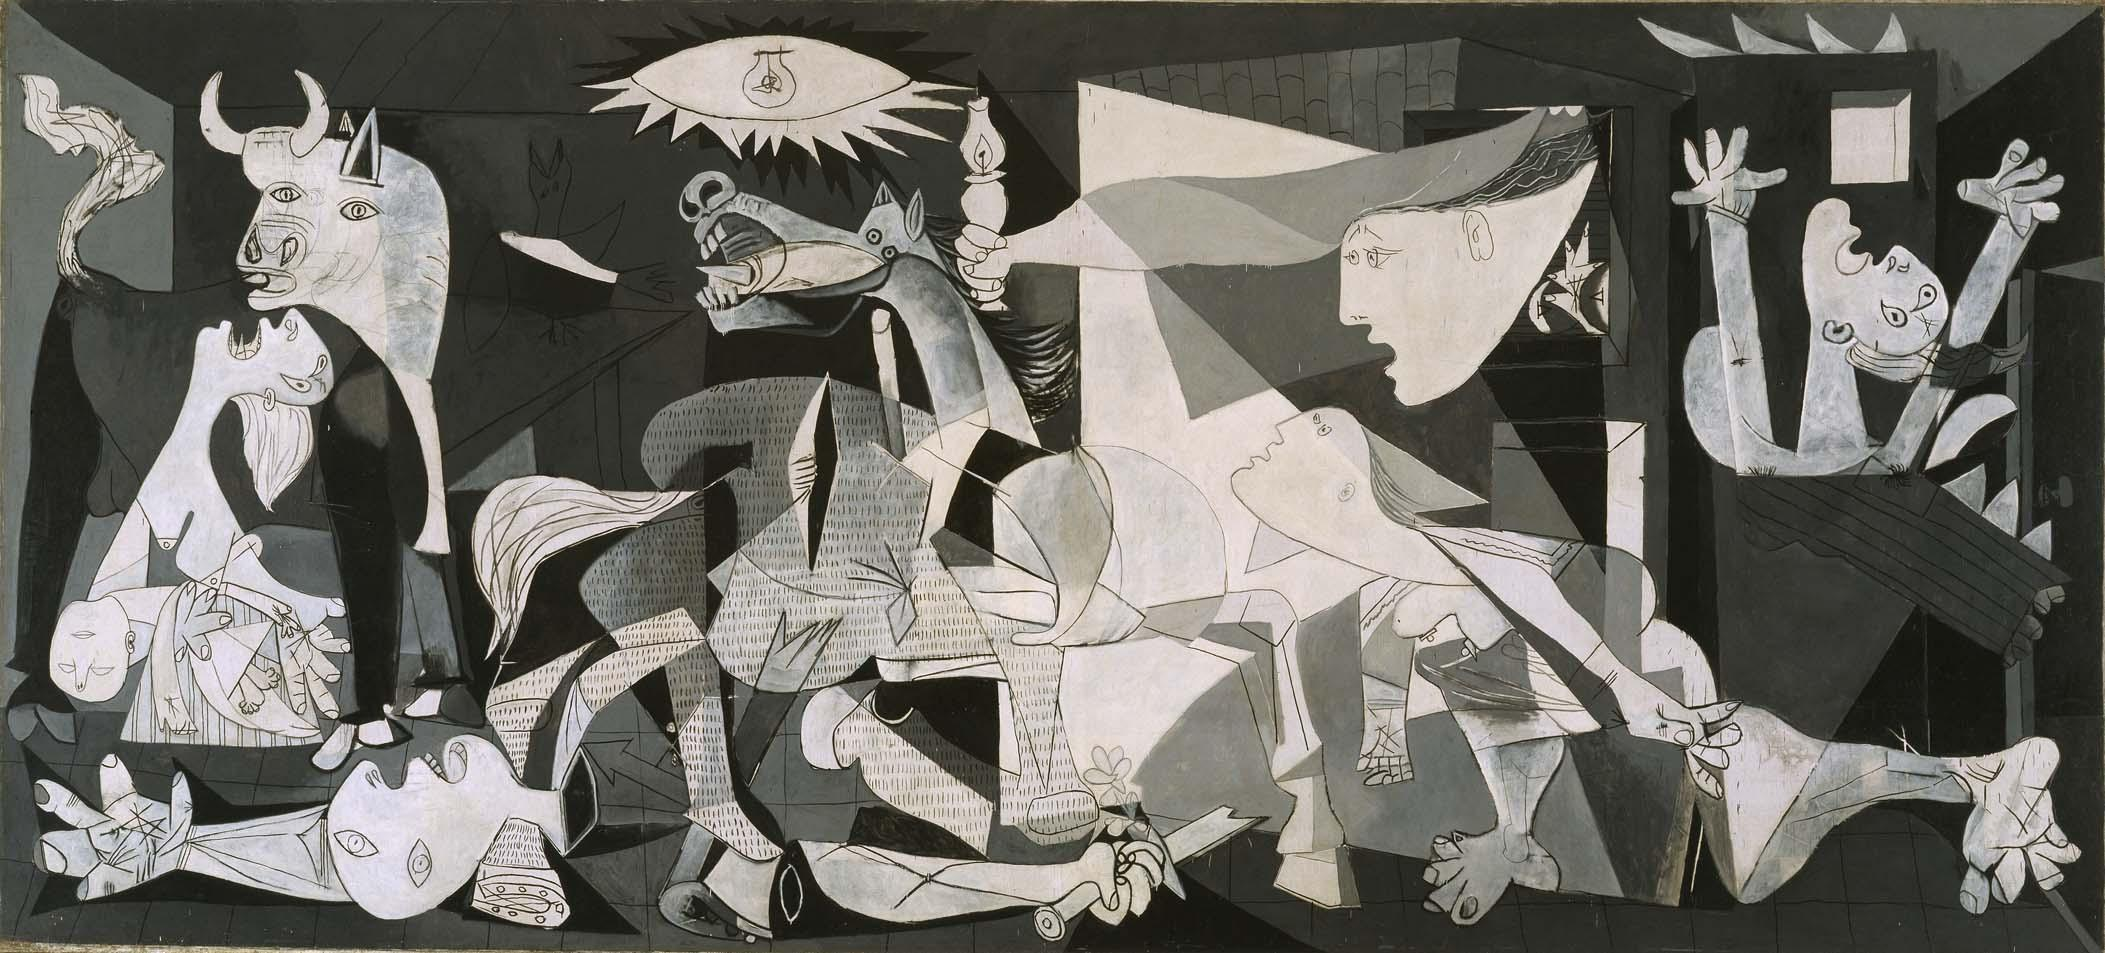 Pablo Picasso, 1937,  Guernica , oil on canvas, 349 cm x 776 cm, Museo Reina Sofia, Spain. © Succession Picasso/Licensed by Viscopy, 2015.